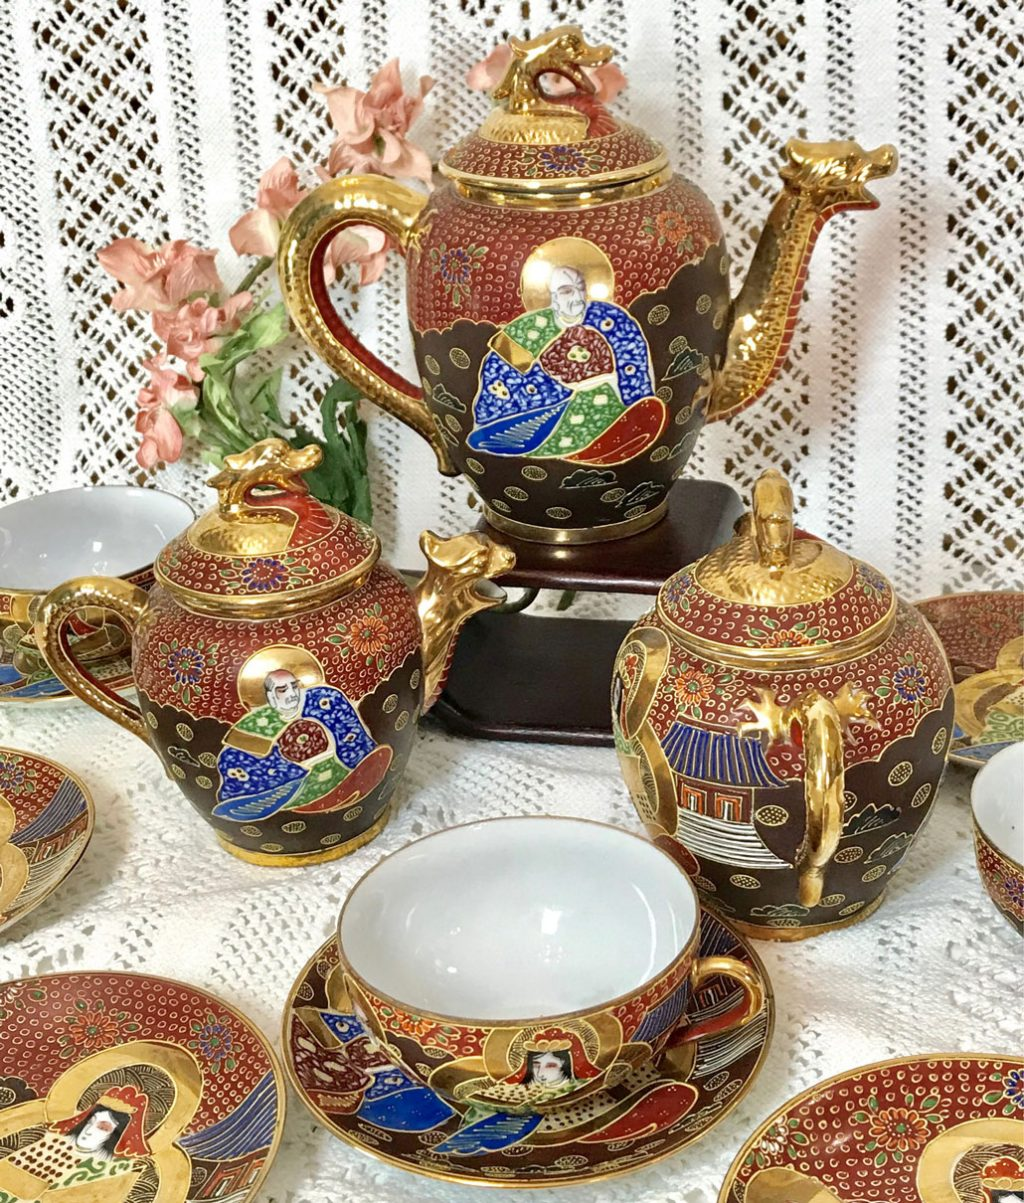 Wickstead's-Japanese-Red-Gold-Dragon-Moriage-Fine-Eggshell-Porcelain-Tea-Set-(7)